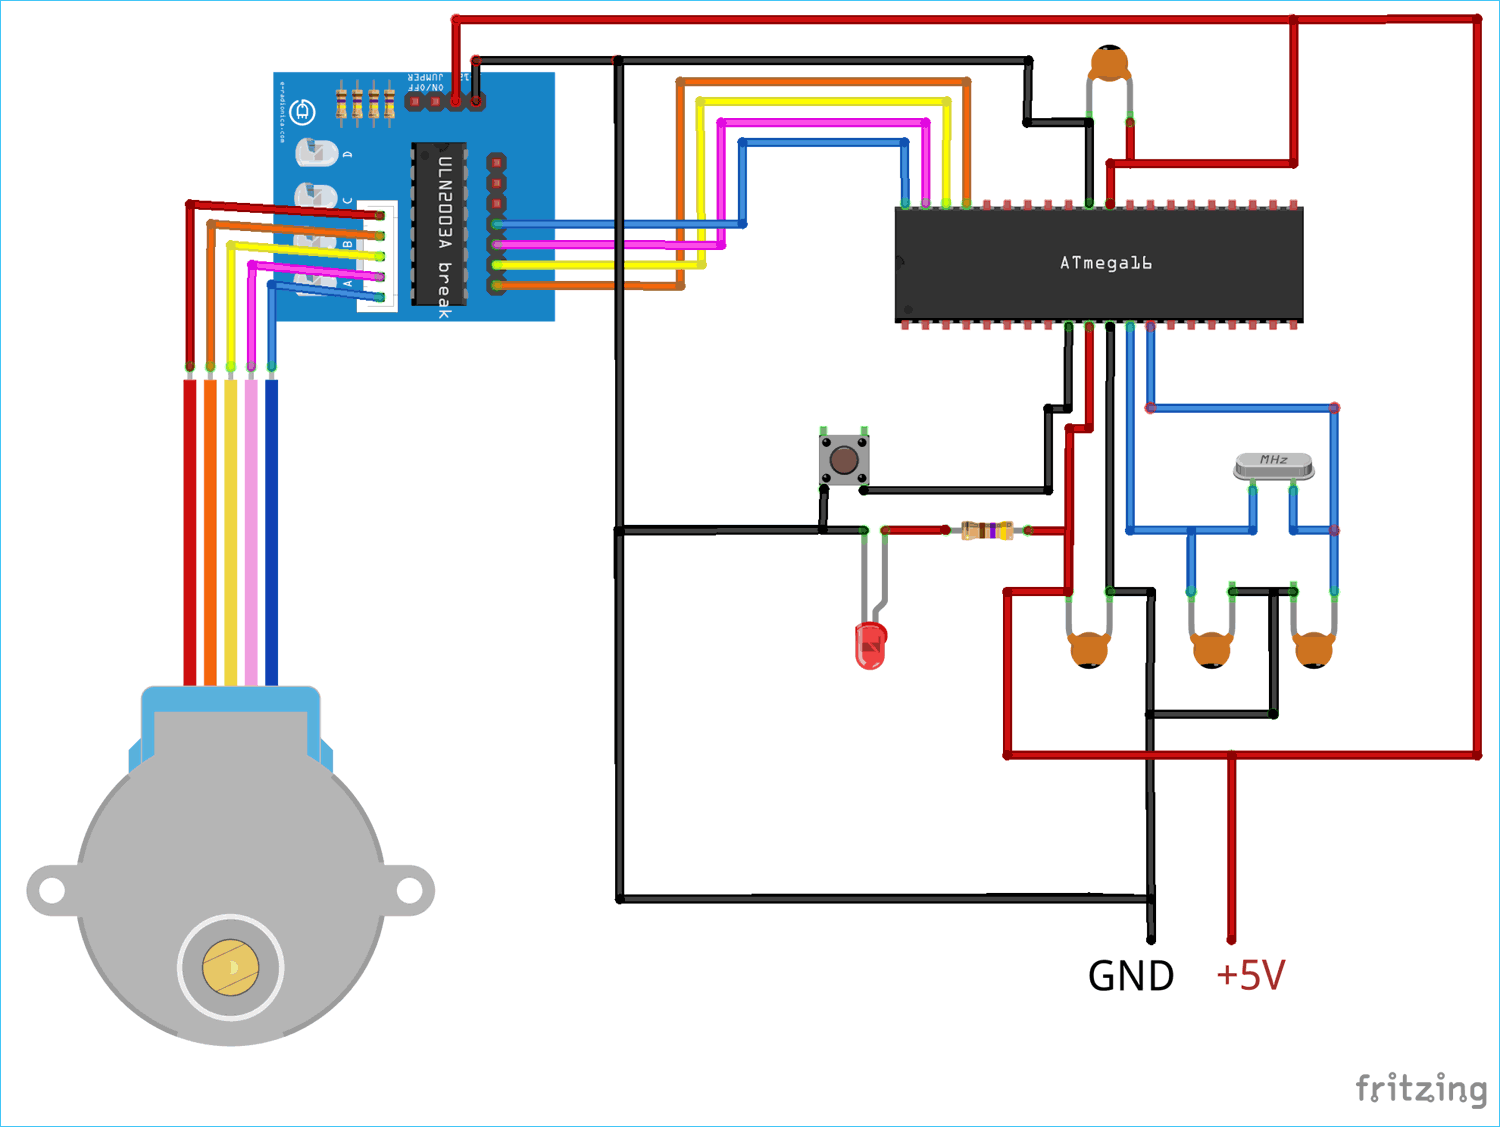 hight resolution of circuit diagram for interfacing stepper motor with avr microcontroller atmega16 using uln2003